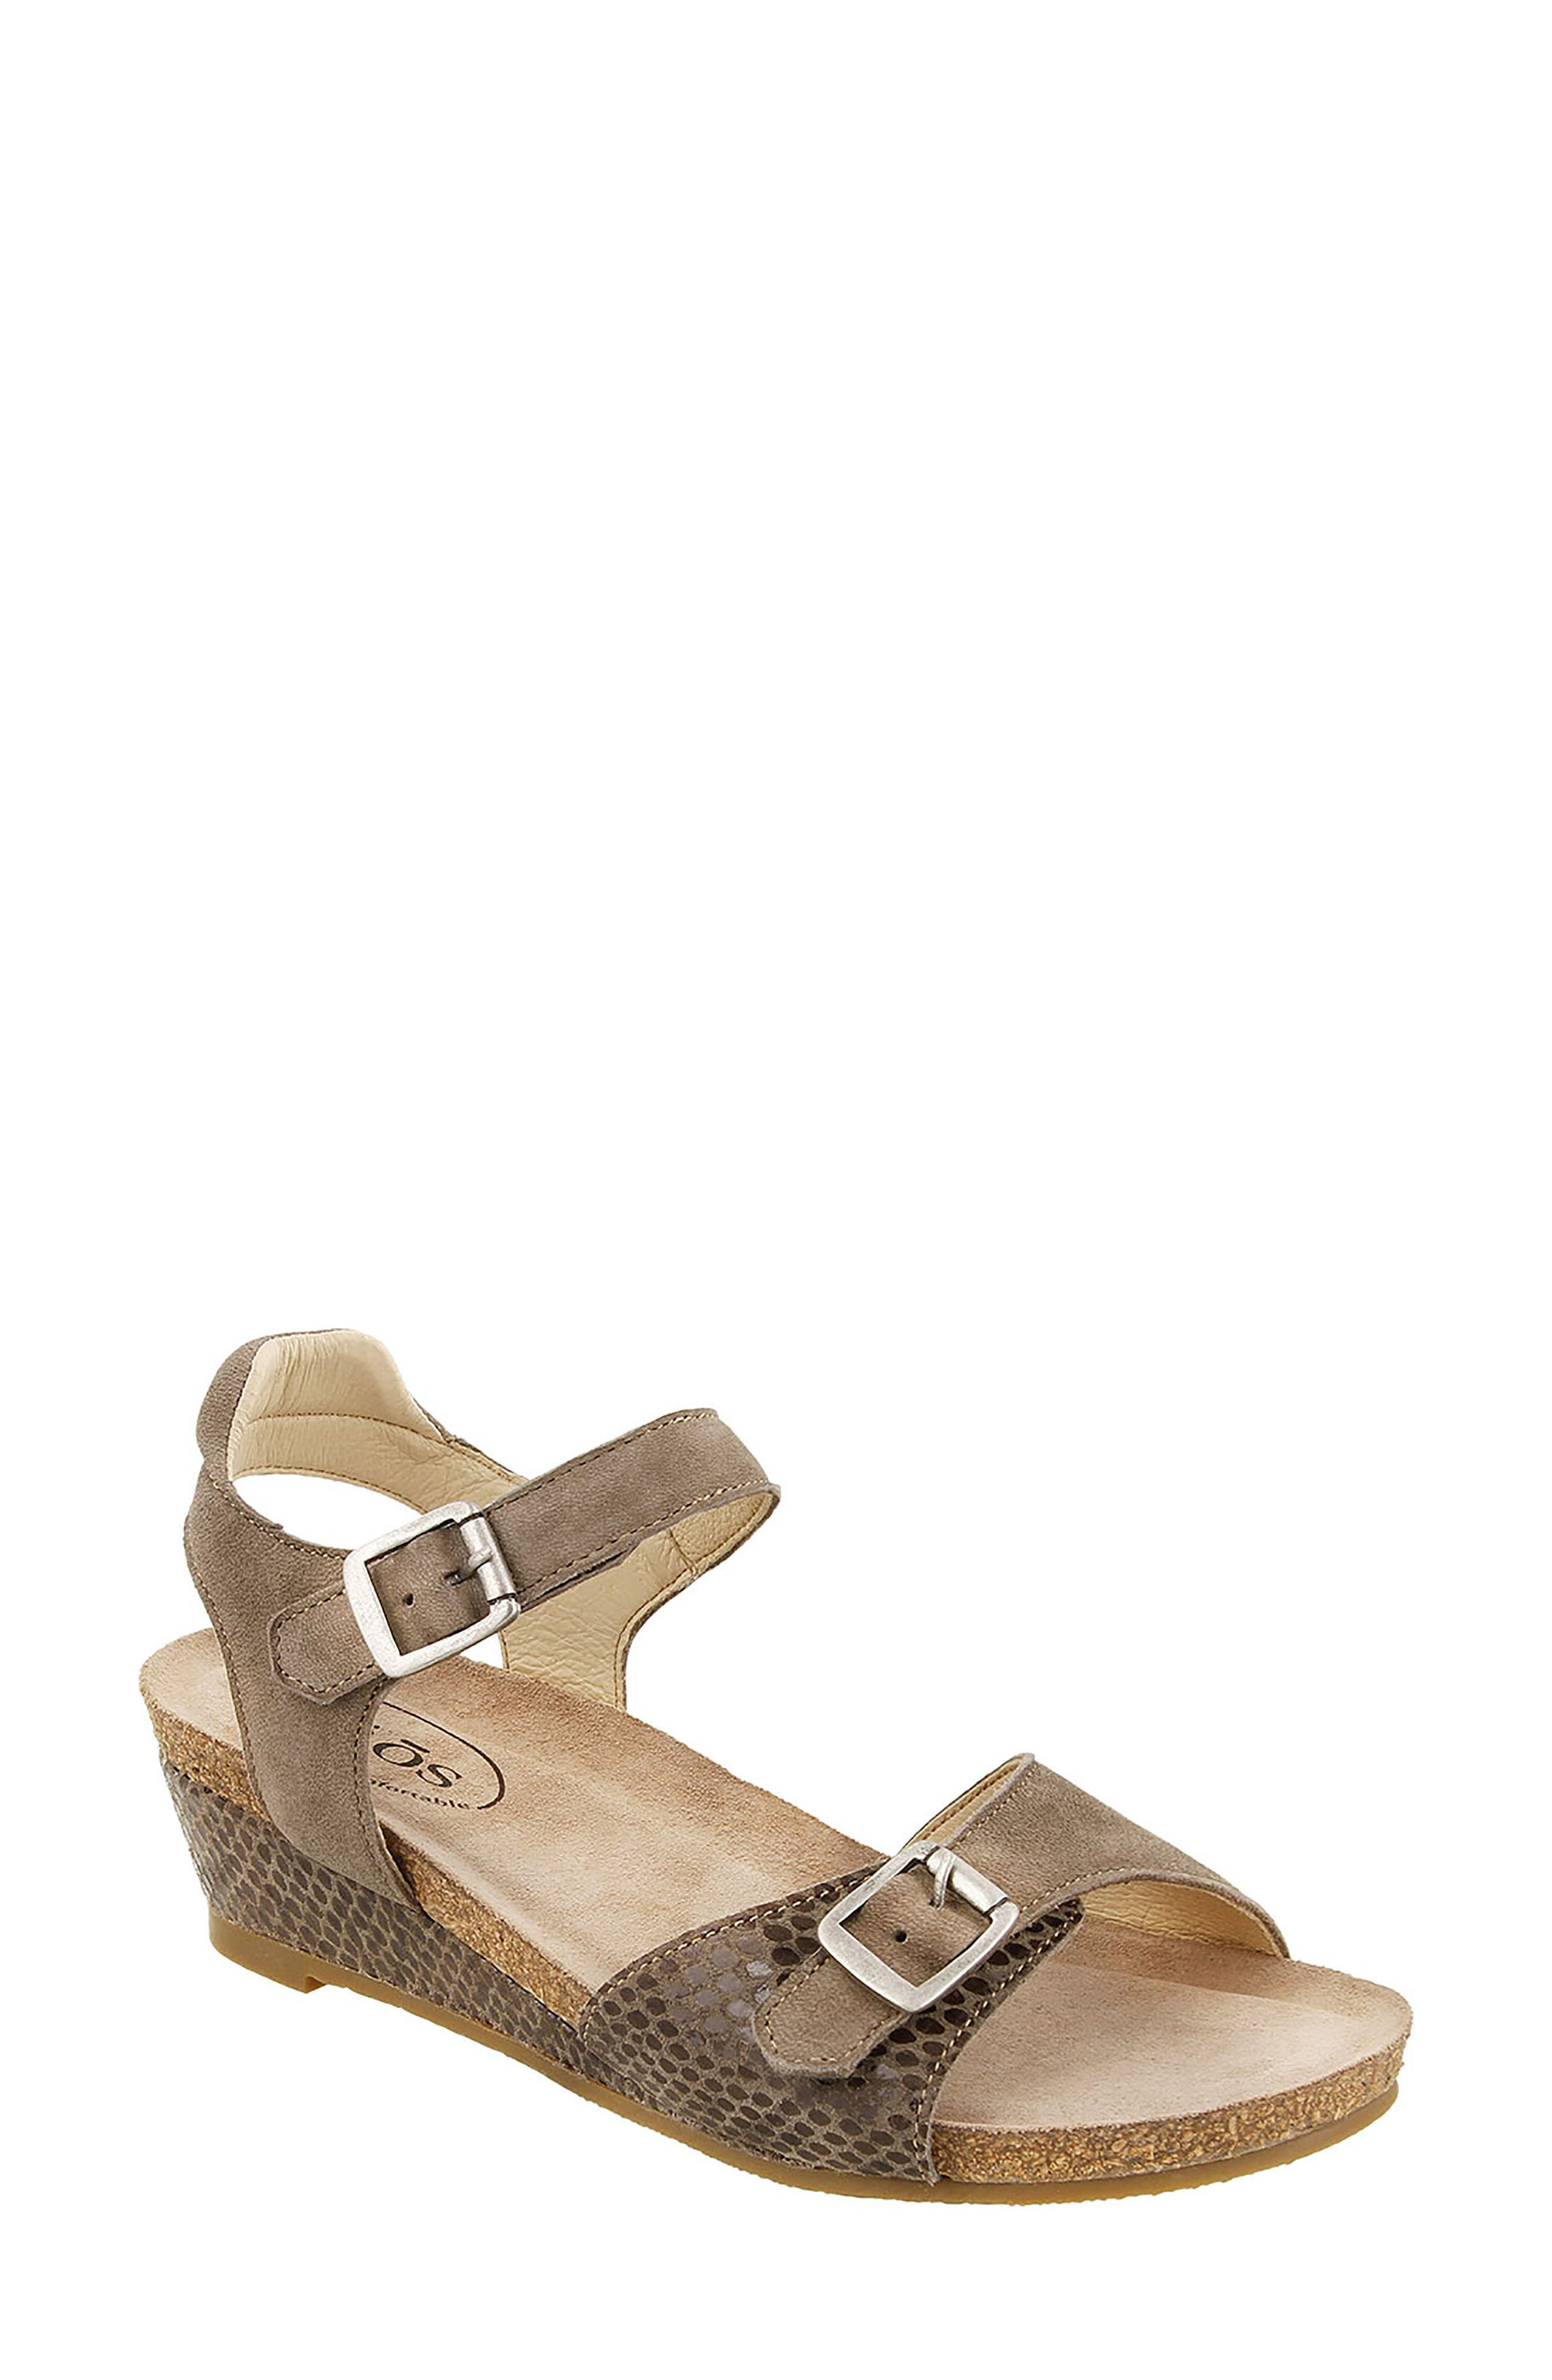 Traveler Wedge Sandal,                             Main thumbnail 1, color,                             Taupe Reptile Embossed Leather